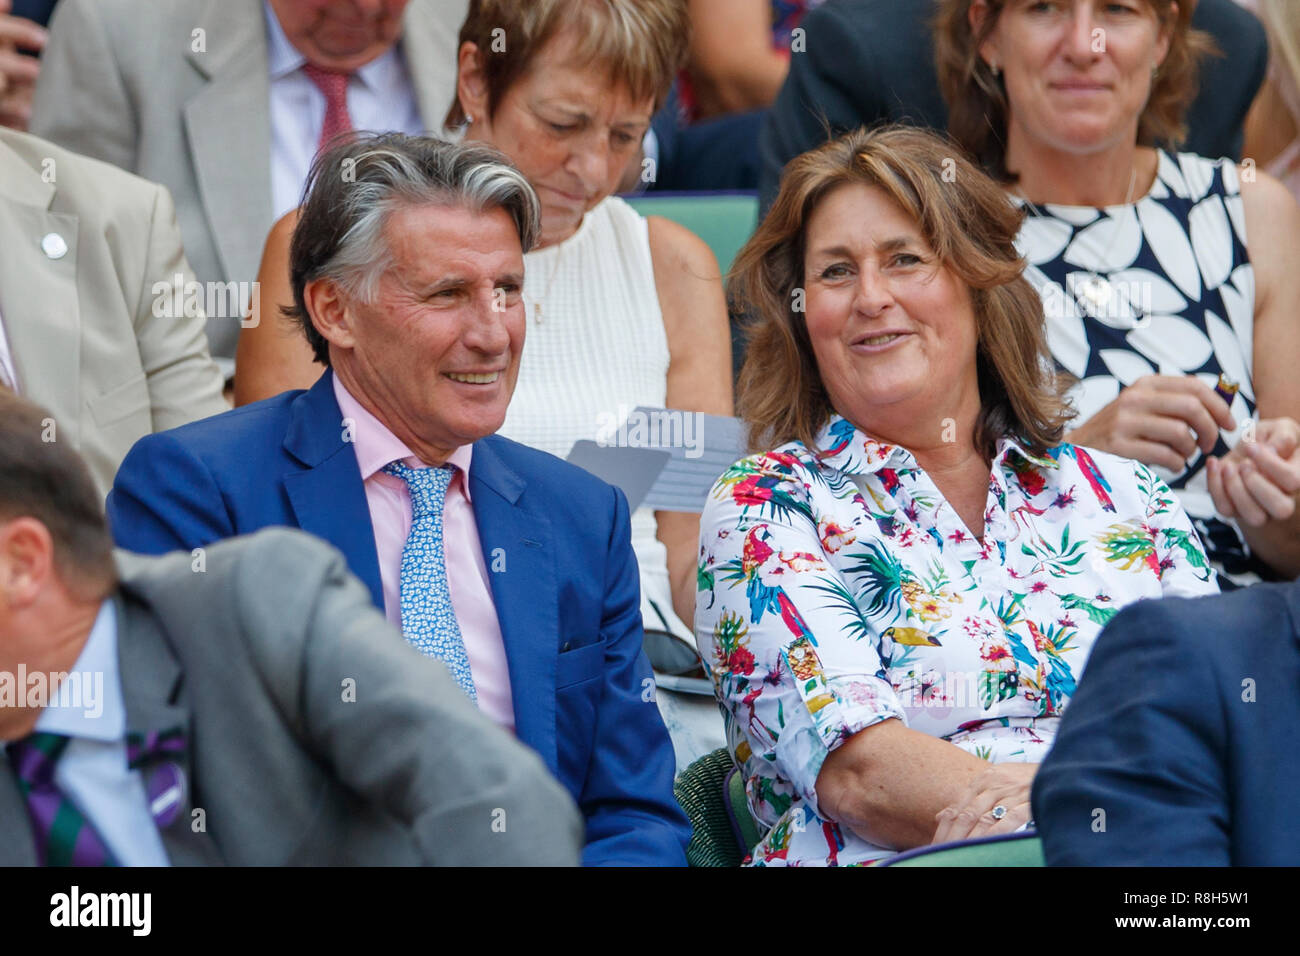 President of the International Association of Athletics Federations Seb Coe watches the action during the Wimbledon Championships 2019 - Stock Image